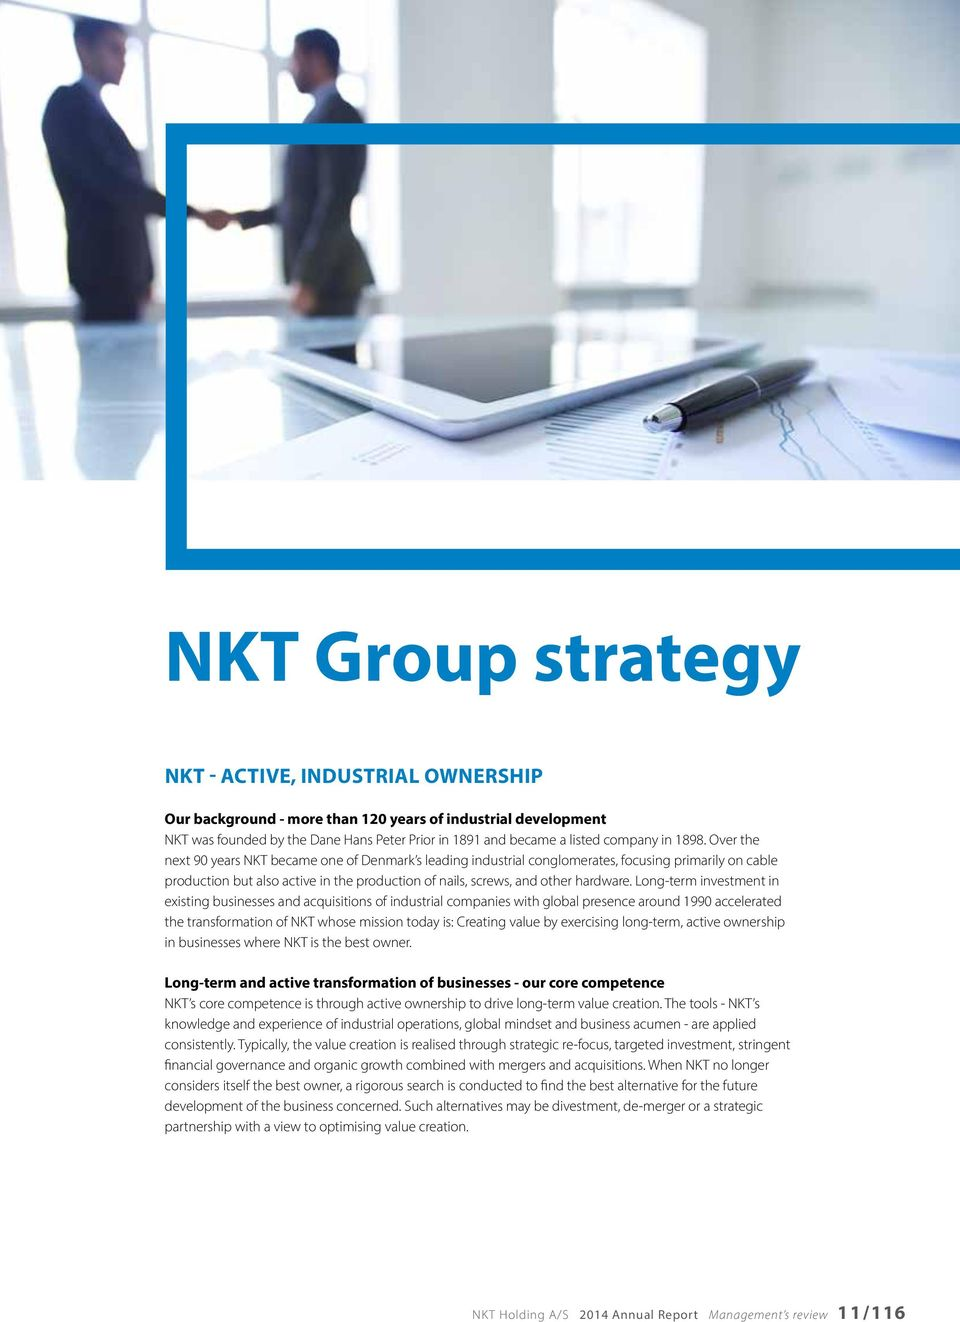 Over the next 90 years NKT became one of Denmark s leading industrial conglomerates, focusing primarily on cable production but also active in the production of nails, screws, and other hardware.